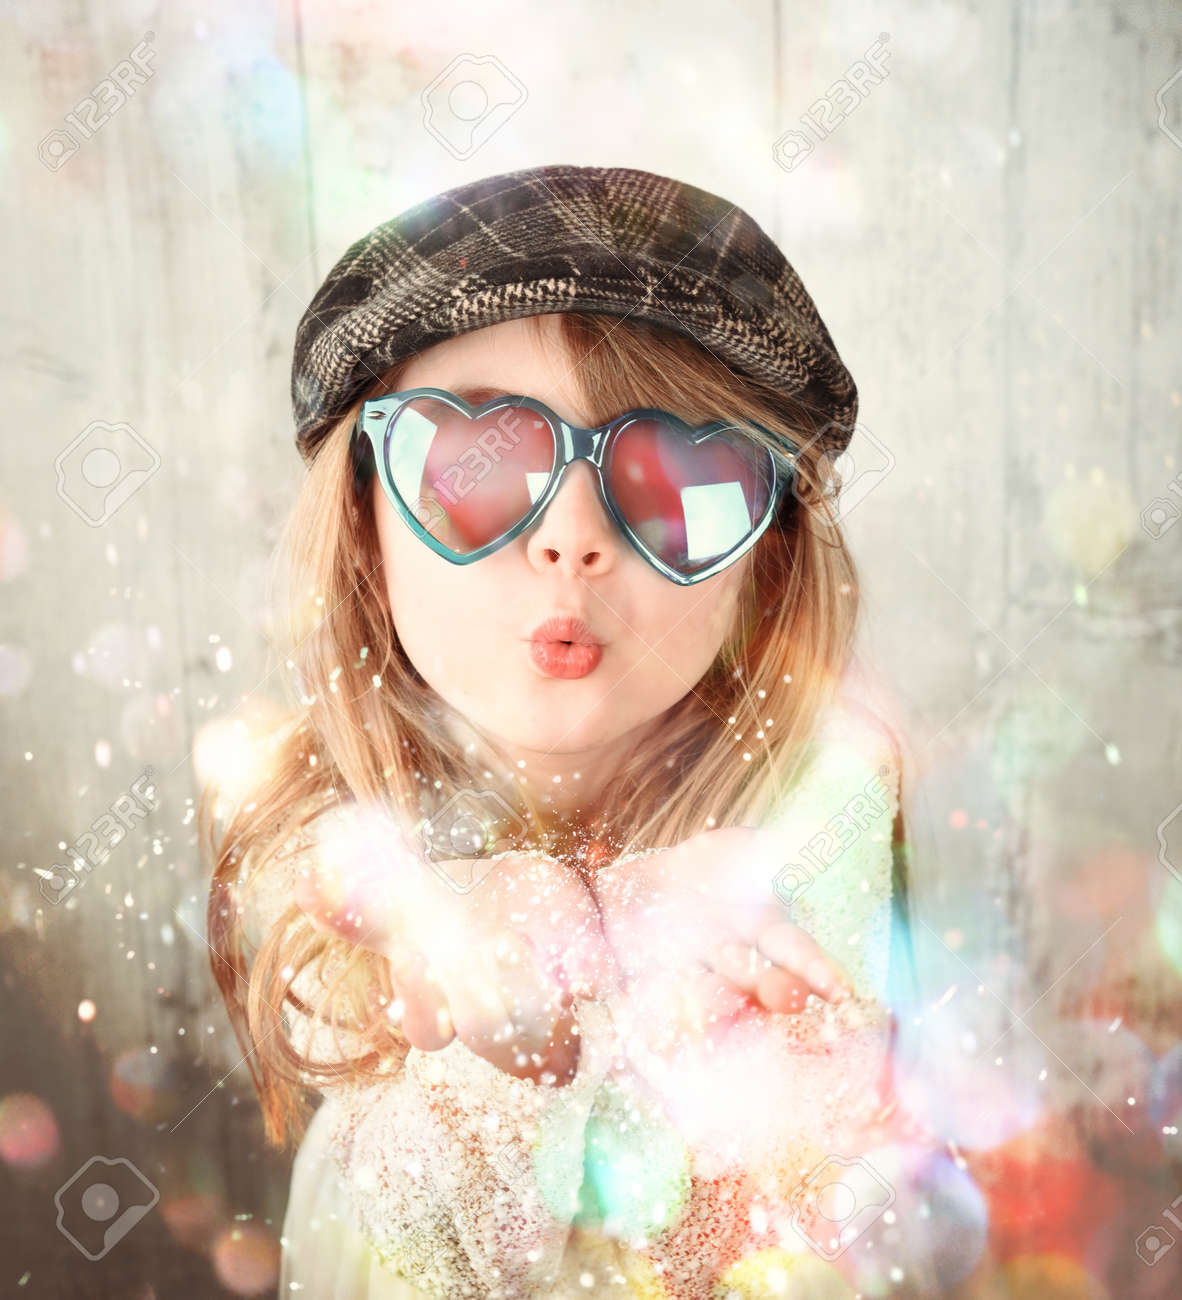 84e29b86731 A little child is wearing sunglasses and blowing magical rainbow glitter  sparkles in the air for